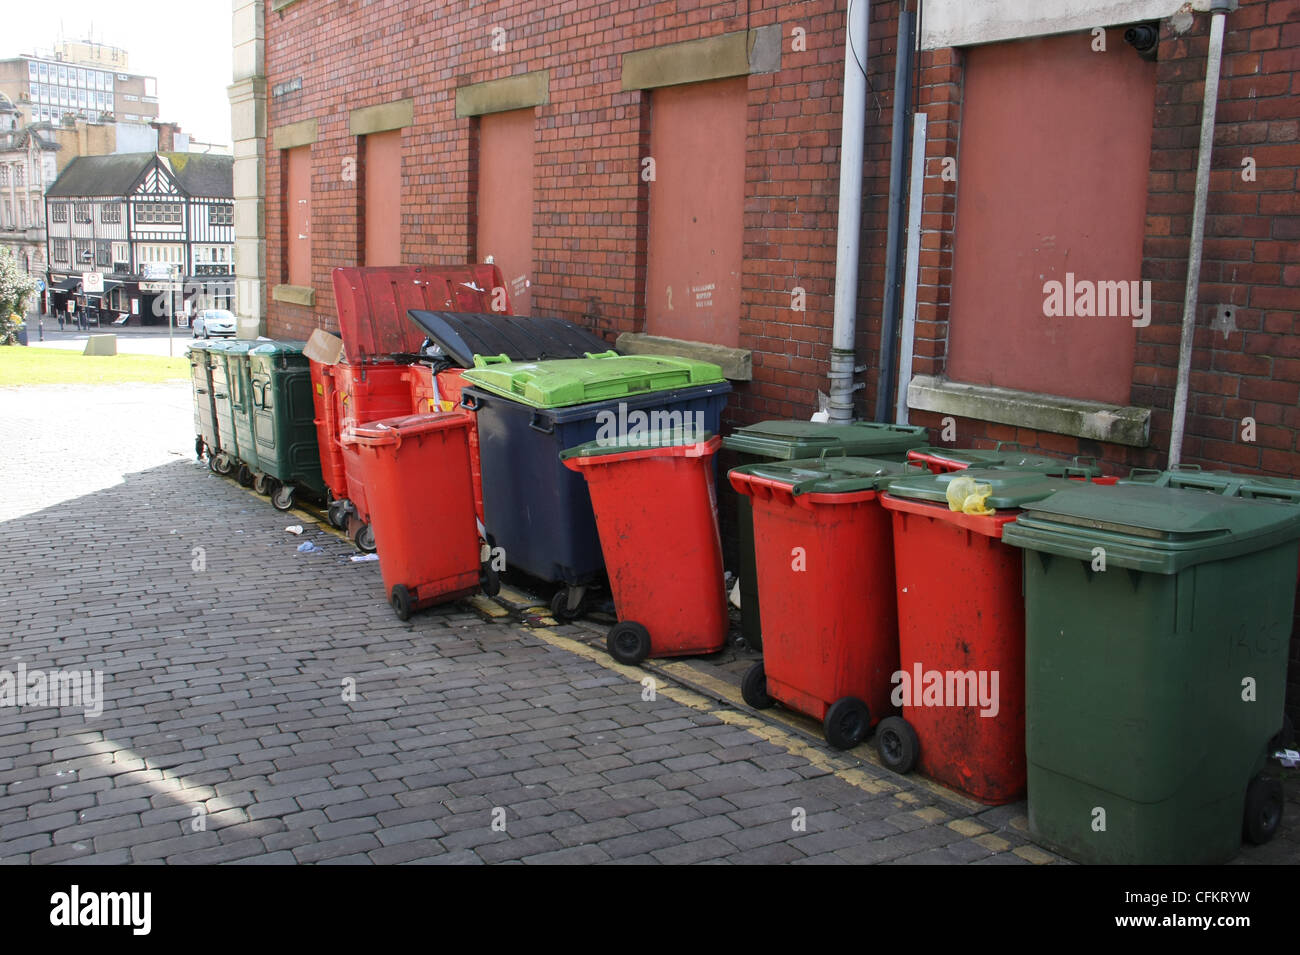 Rubbish bins in Swansea - Stock Image